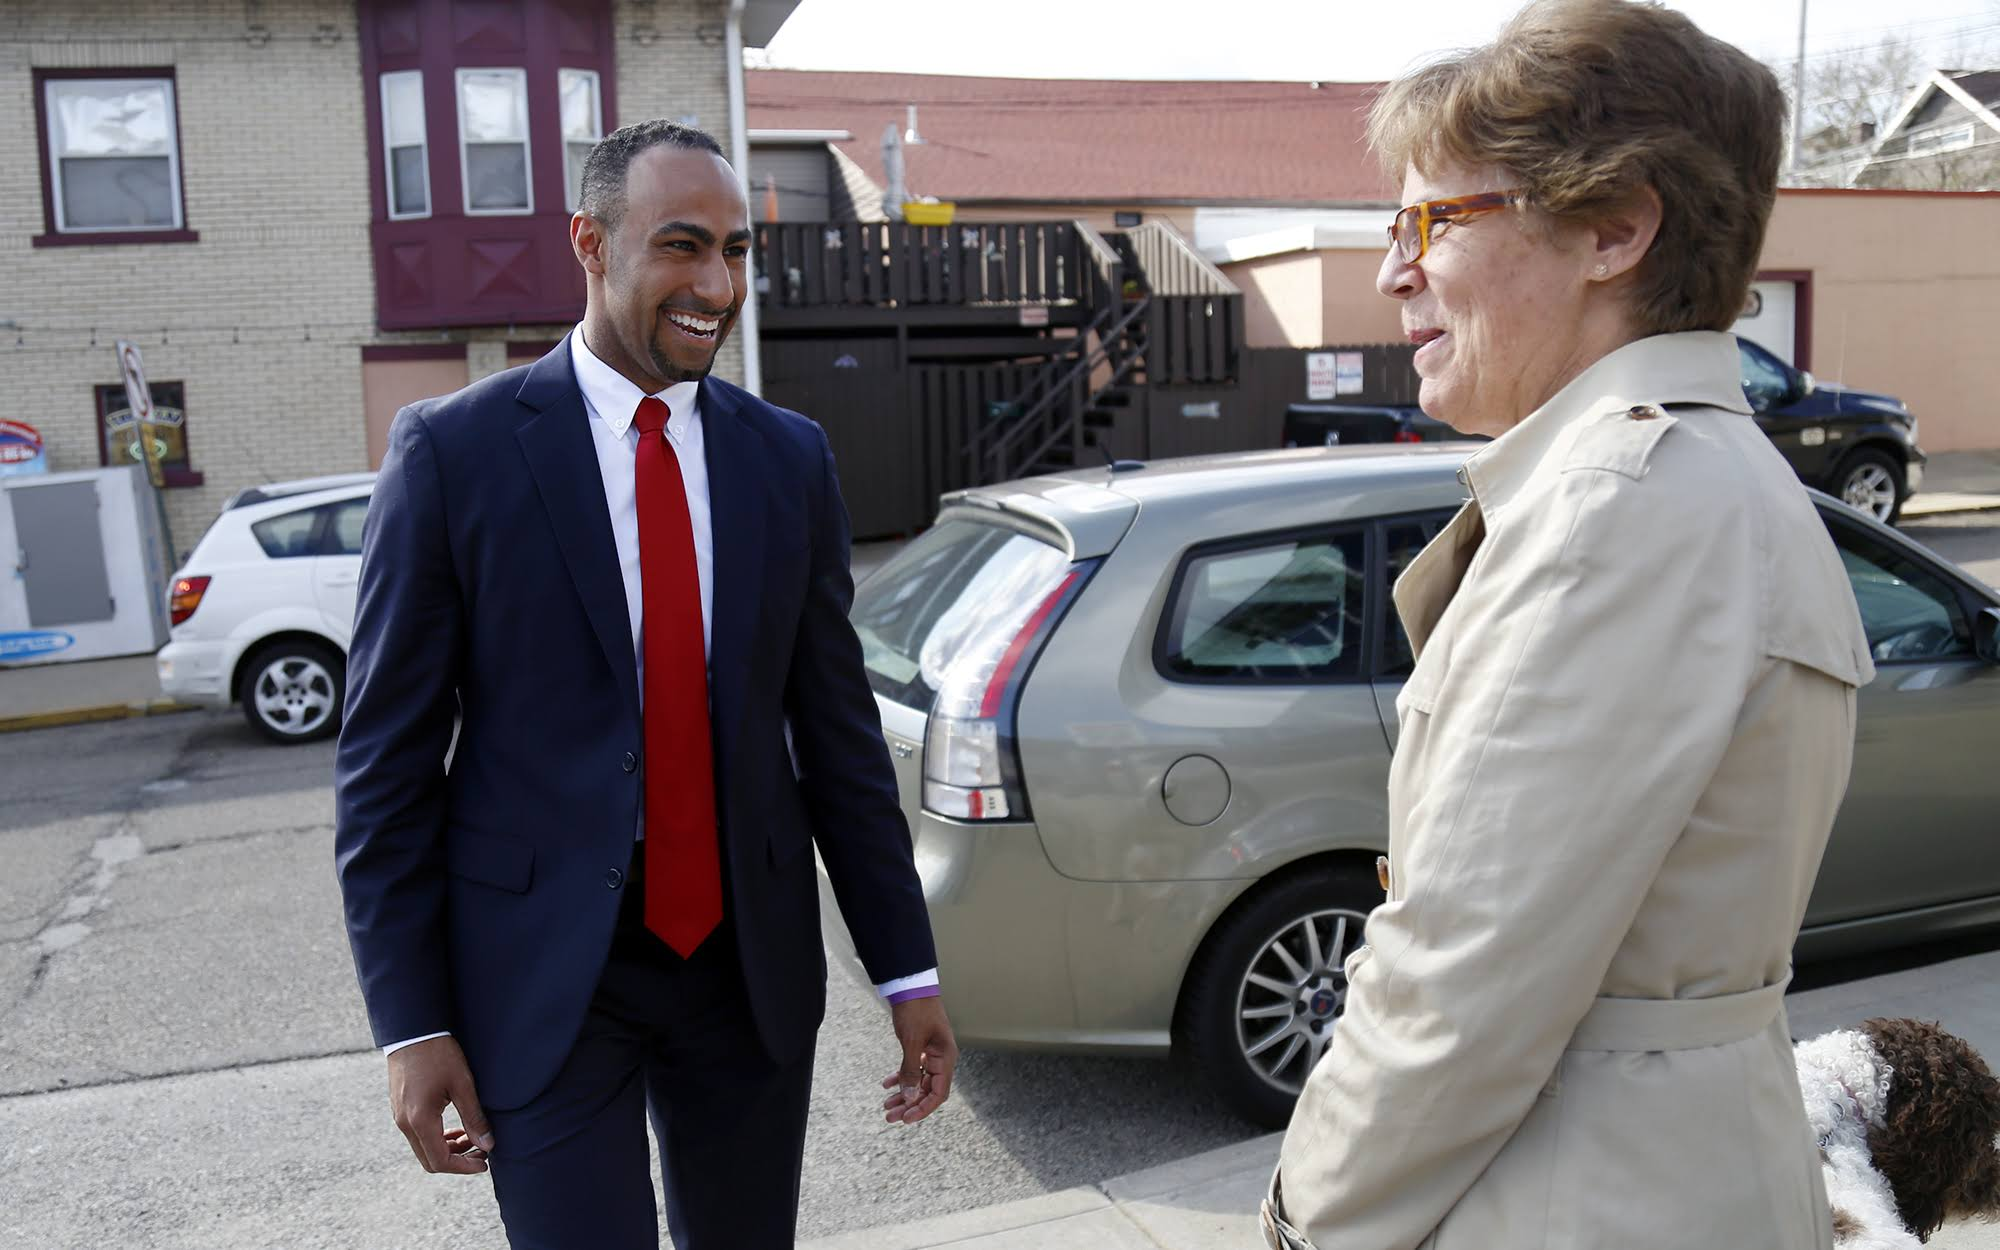 Gerald Dickinson chats with neighbor and colleague Mimi McCormick while walking in Regent Square. (Photo by Ryan Loew/PublicSource)